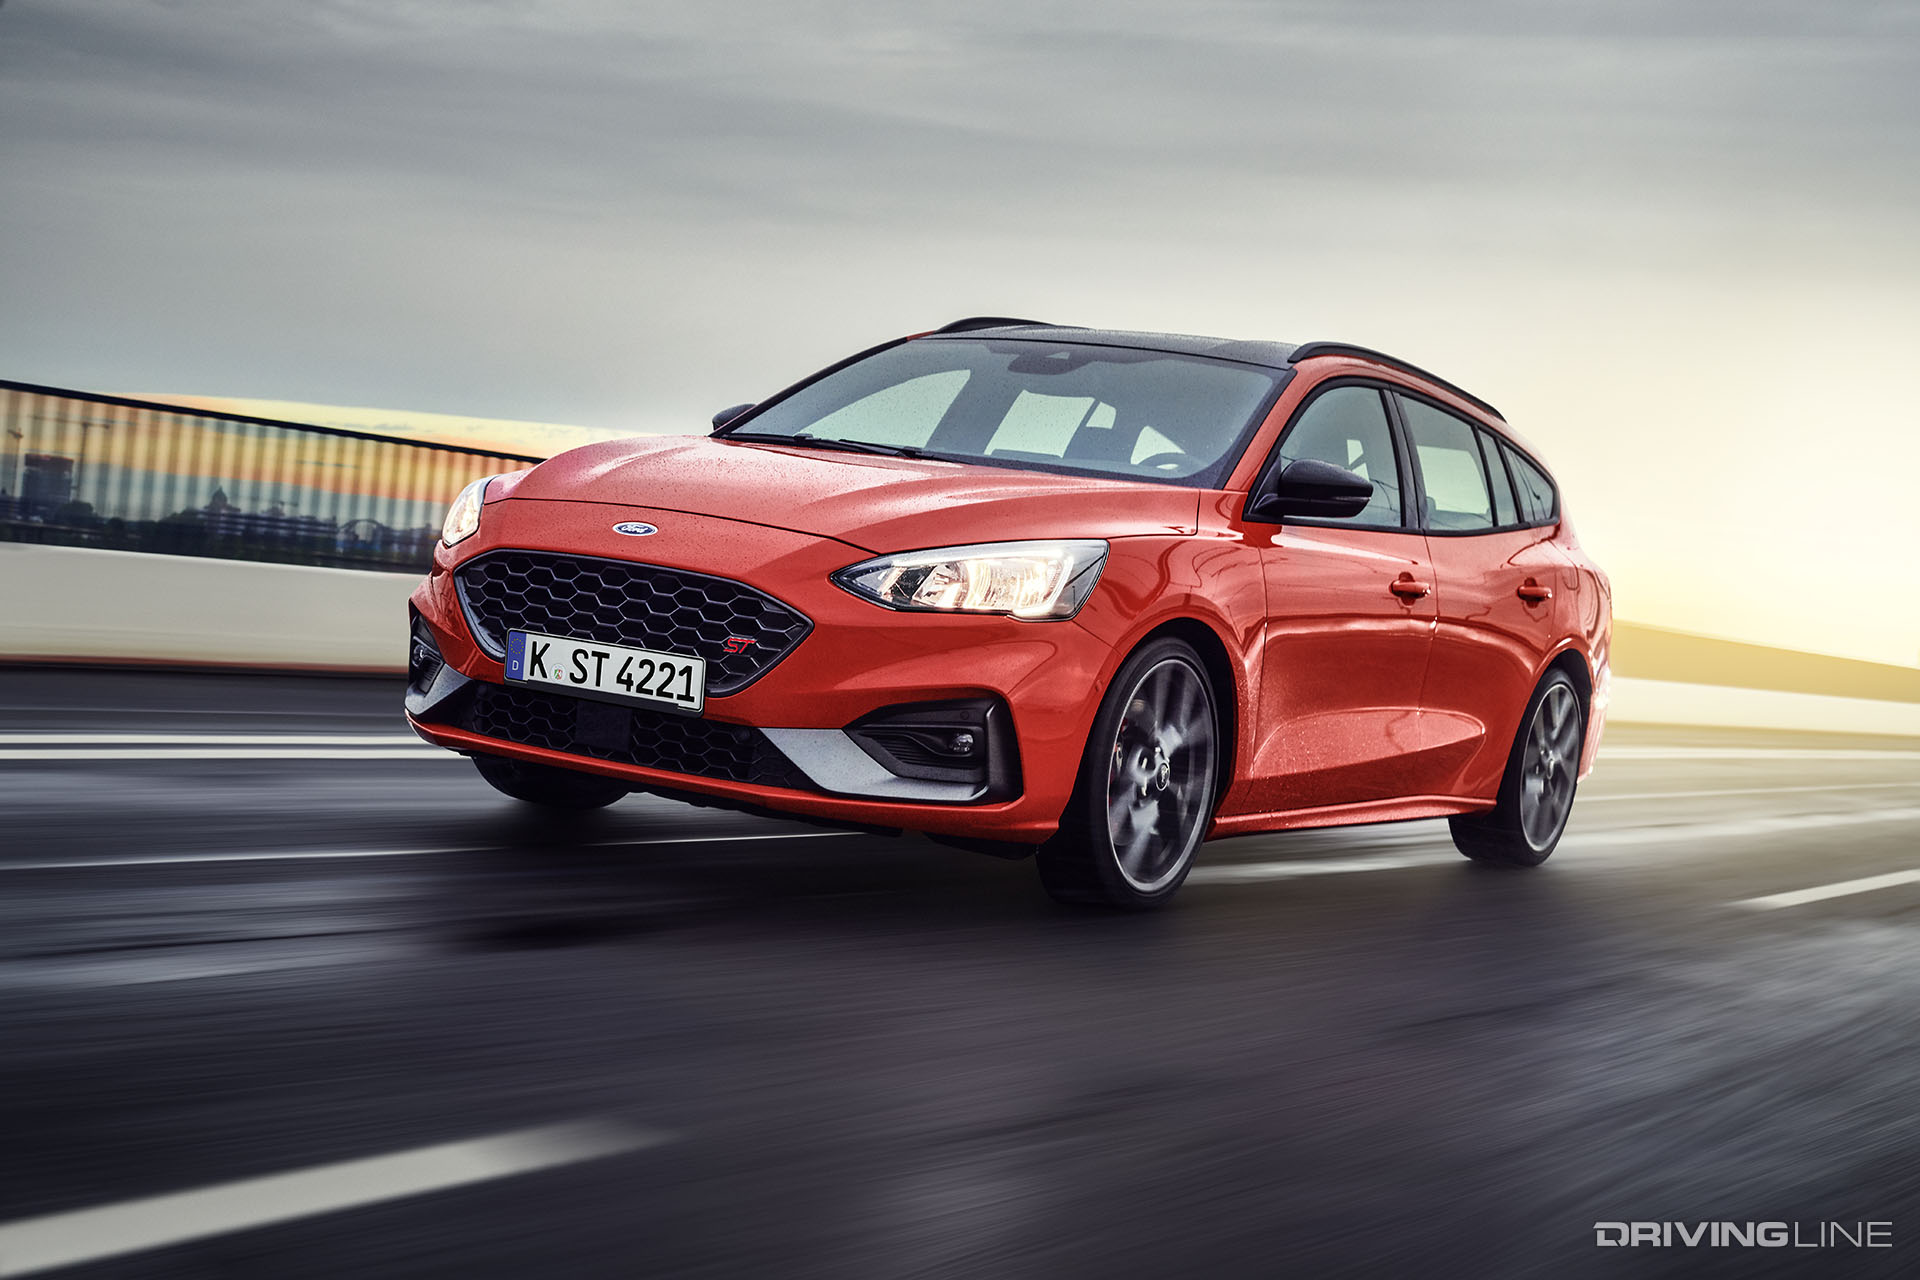 2017 Ford Focus Station Wagon ST-3 - Exterior and Interior ... |Ford Focus Station Wagon